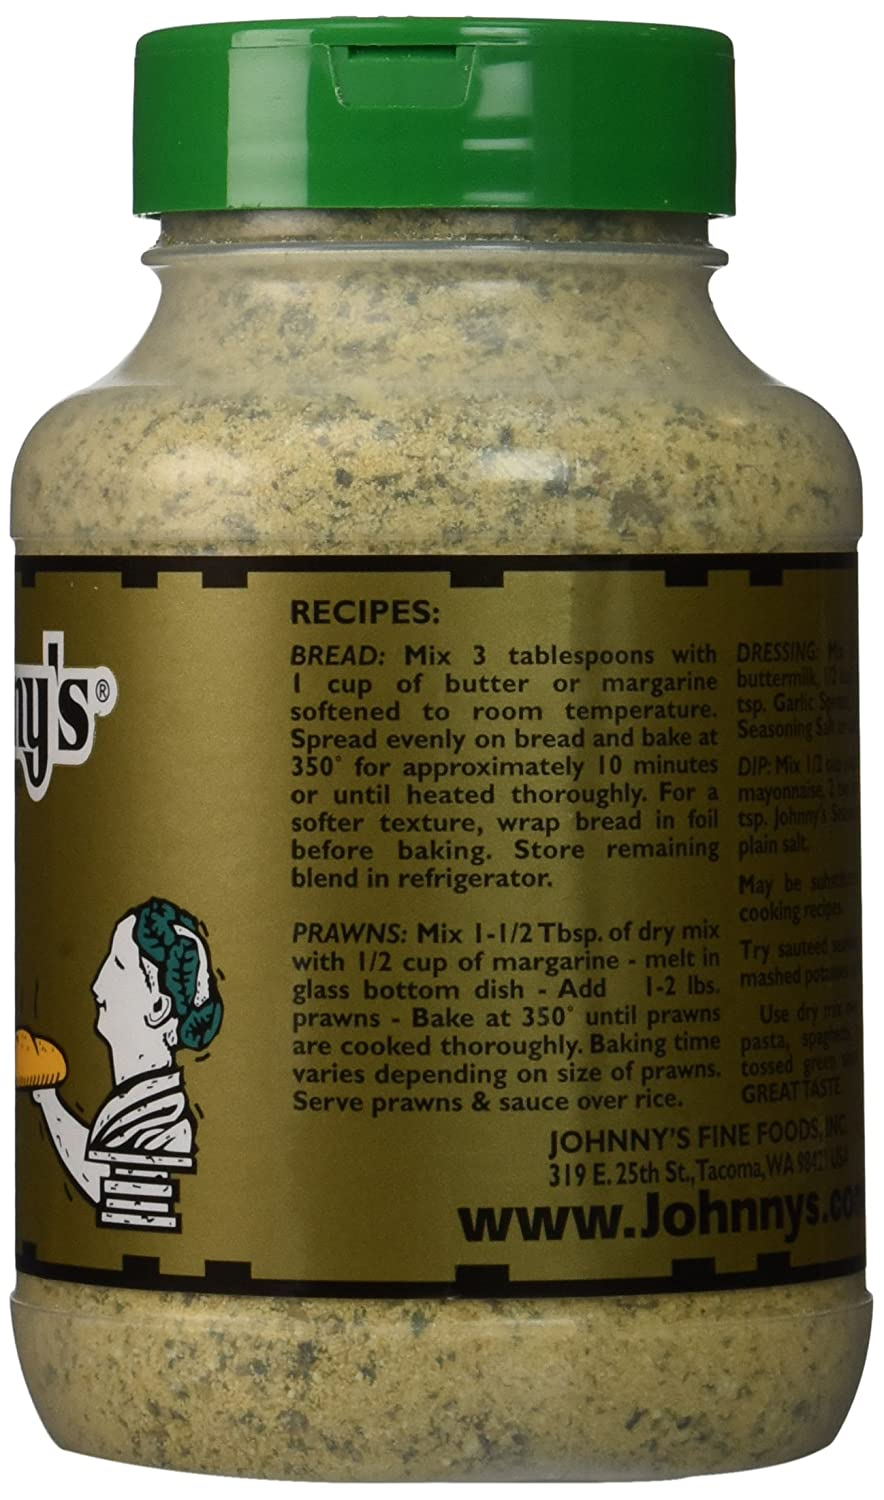 Johnny's Parmesan Garlic (Garlic Spread) Johnny's